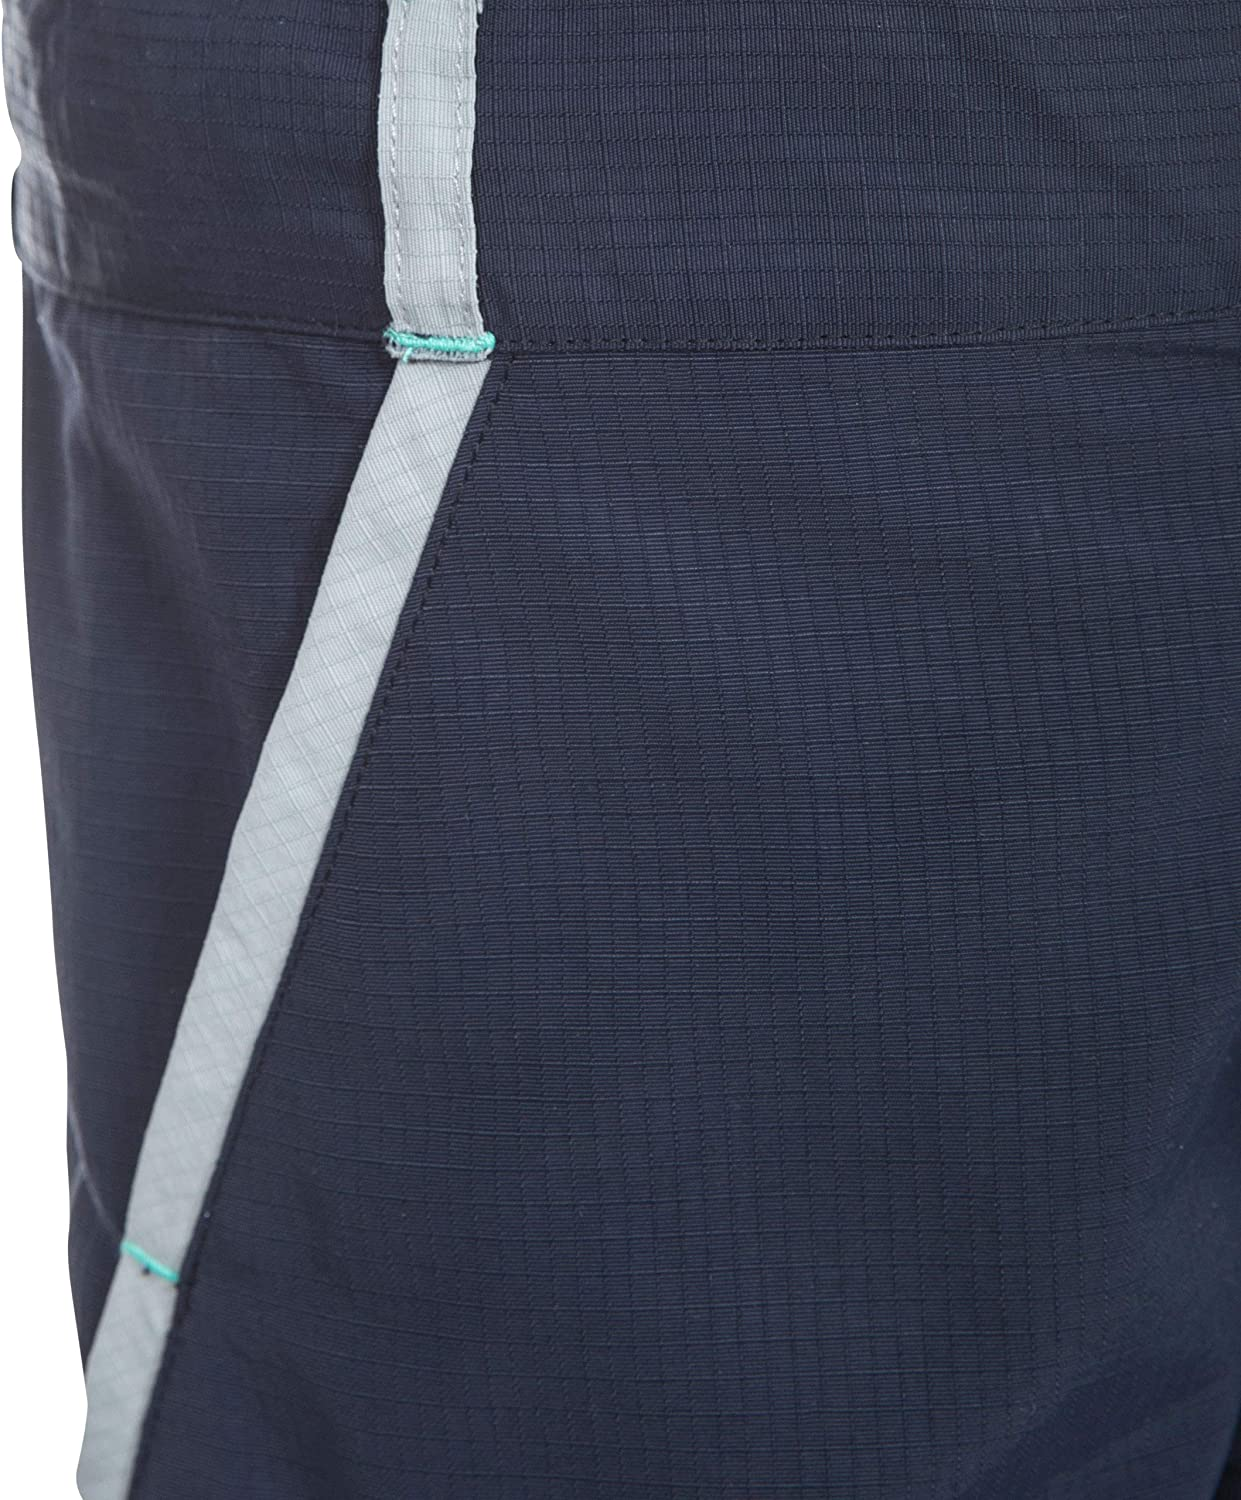 Trespass Childrens Defender Trousers//Pants with Uv Protection